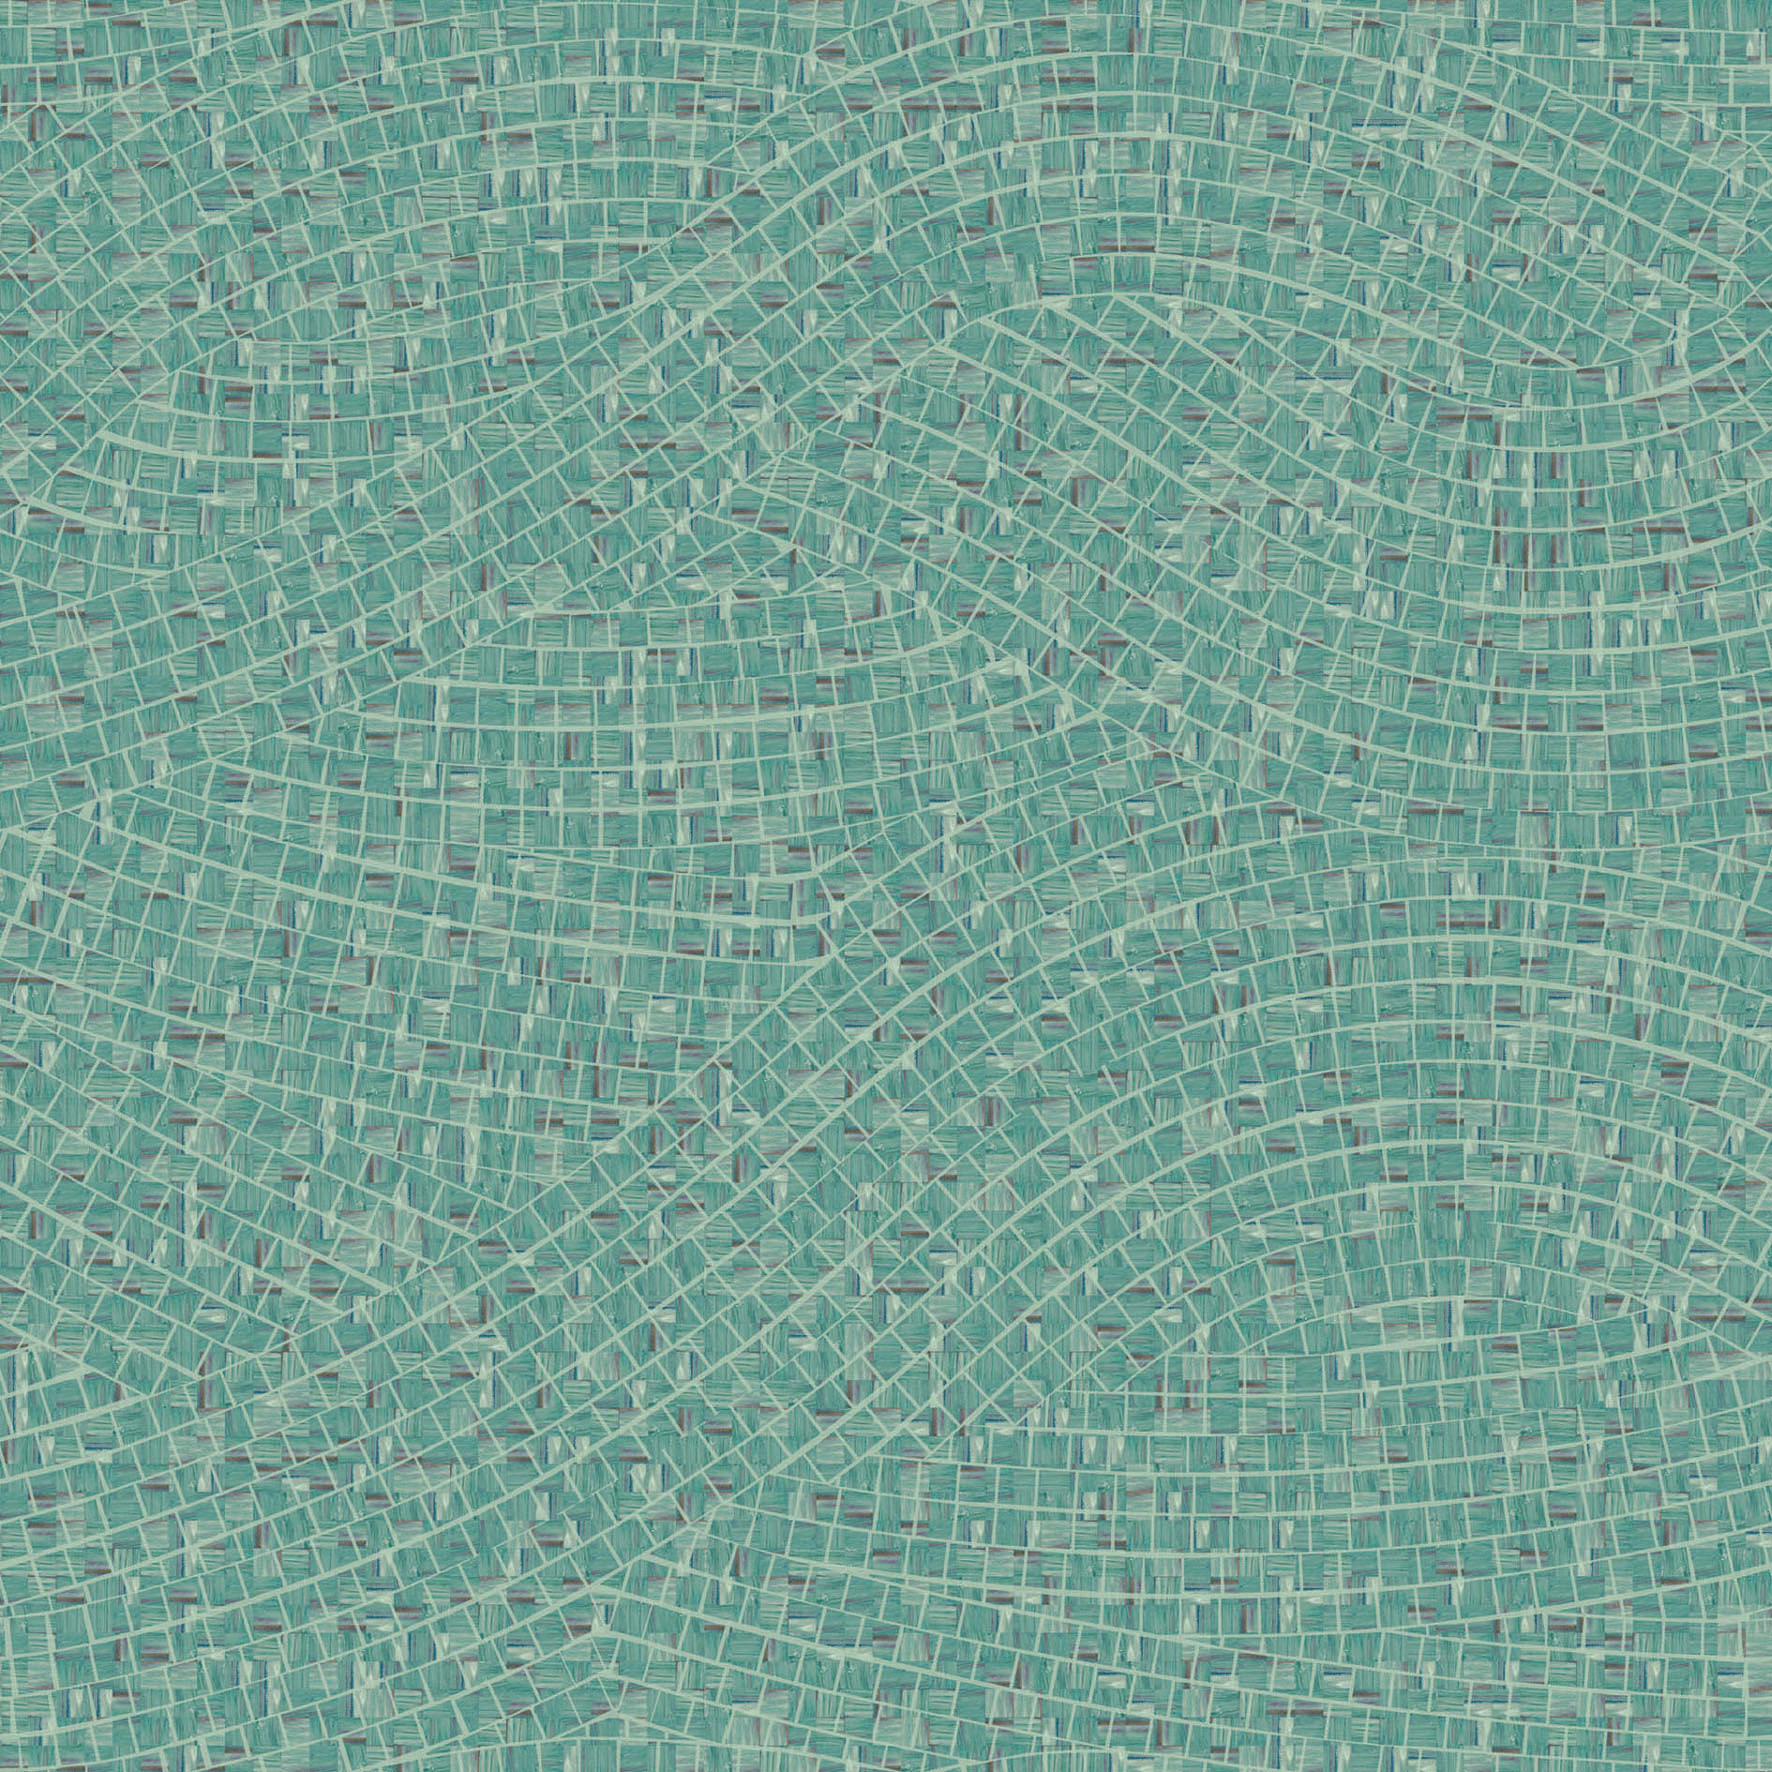 Handmade Decorative Tiles Interesting Wave Gm2032 Pattern In Bisazza Glass Mosaic 20X20Mm Tiles Decorating Inspiration